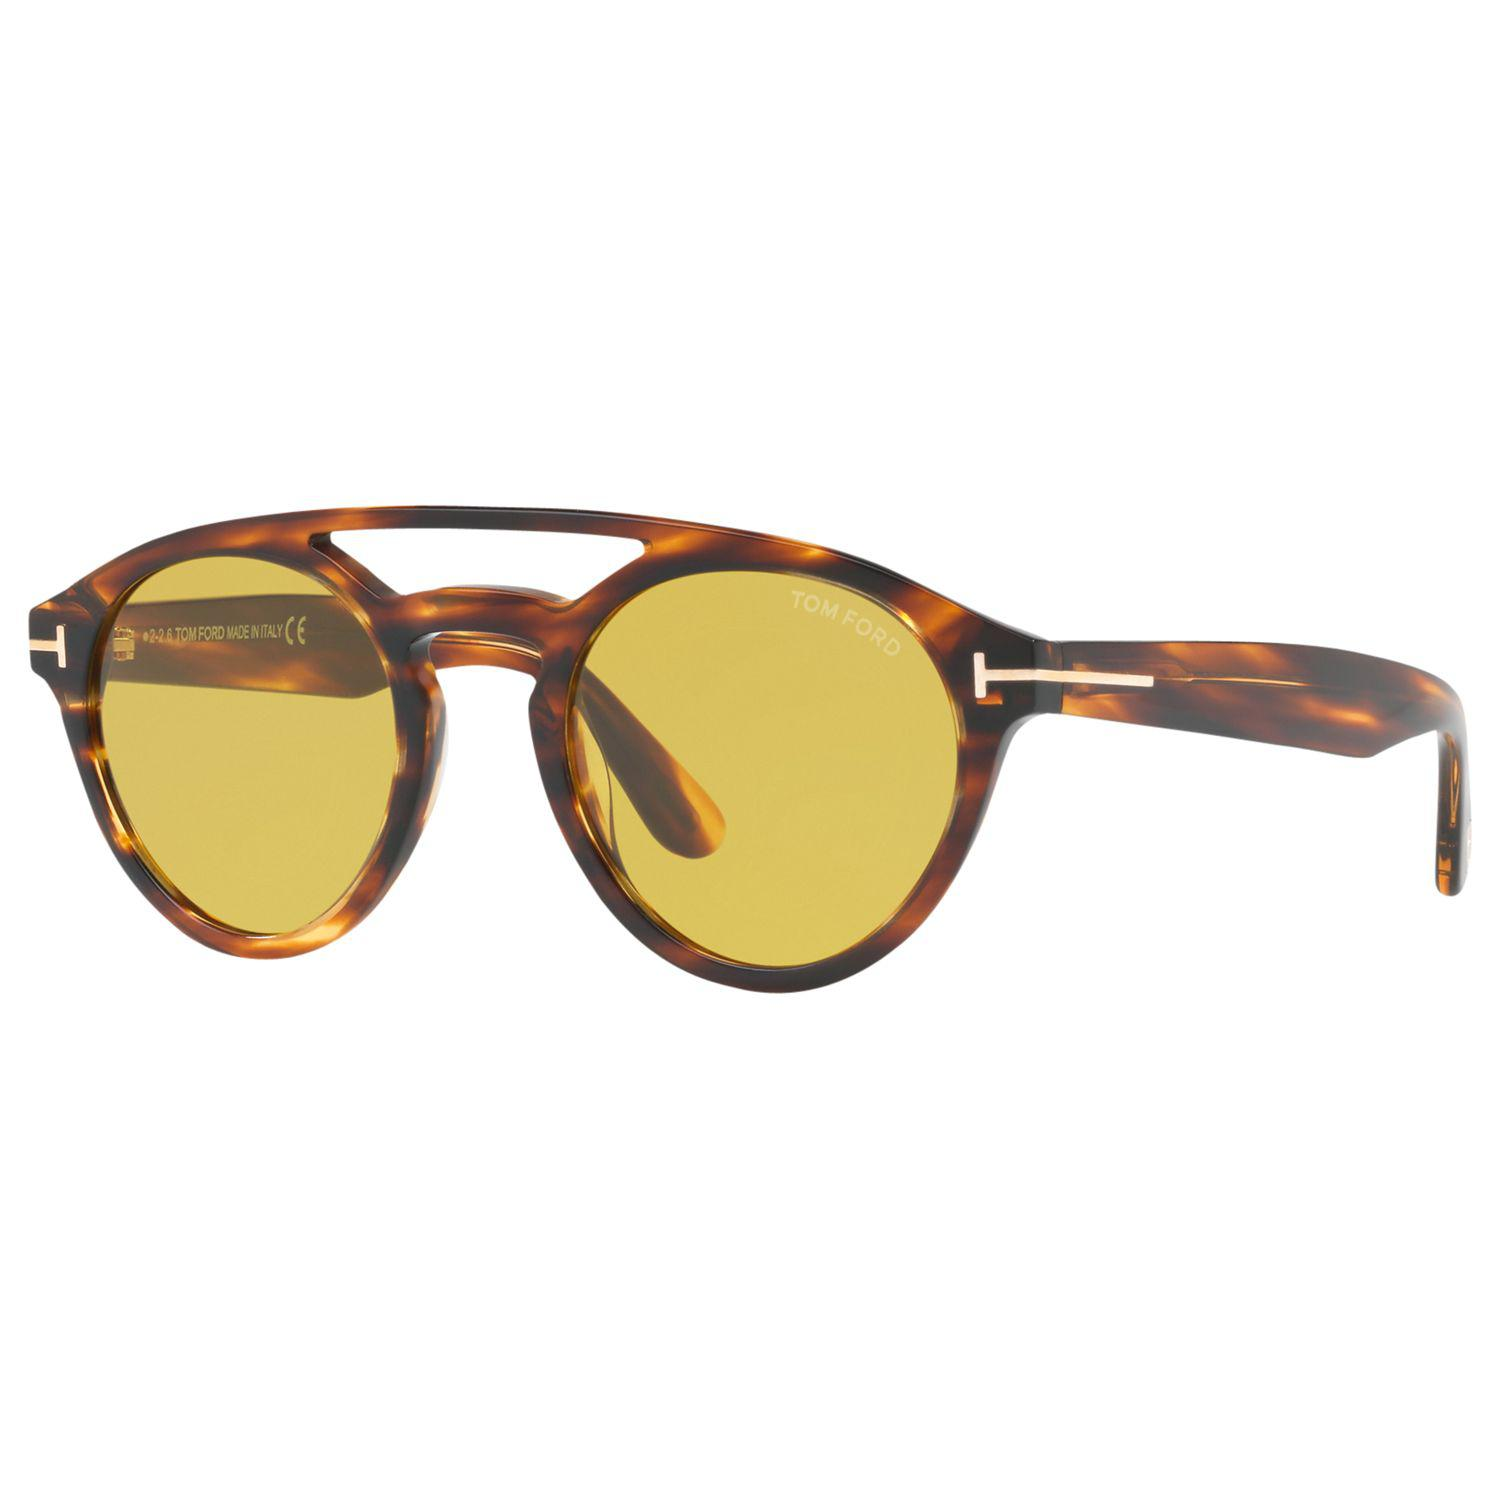 52065885096 Tom Ford Ft0537 Clint Round Sunglasses in Brown for Men - Lyst